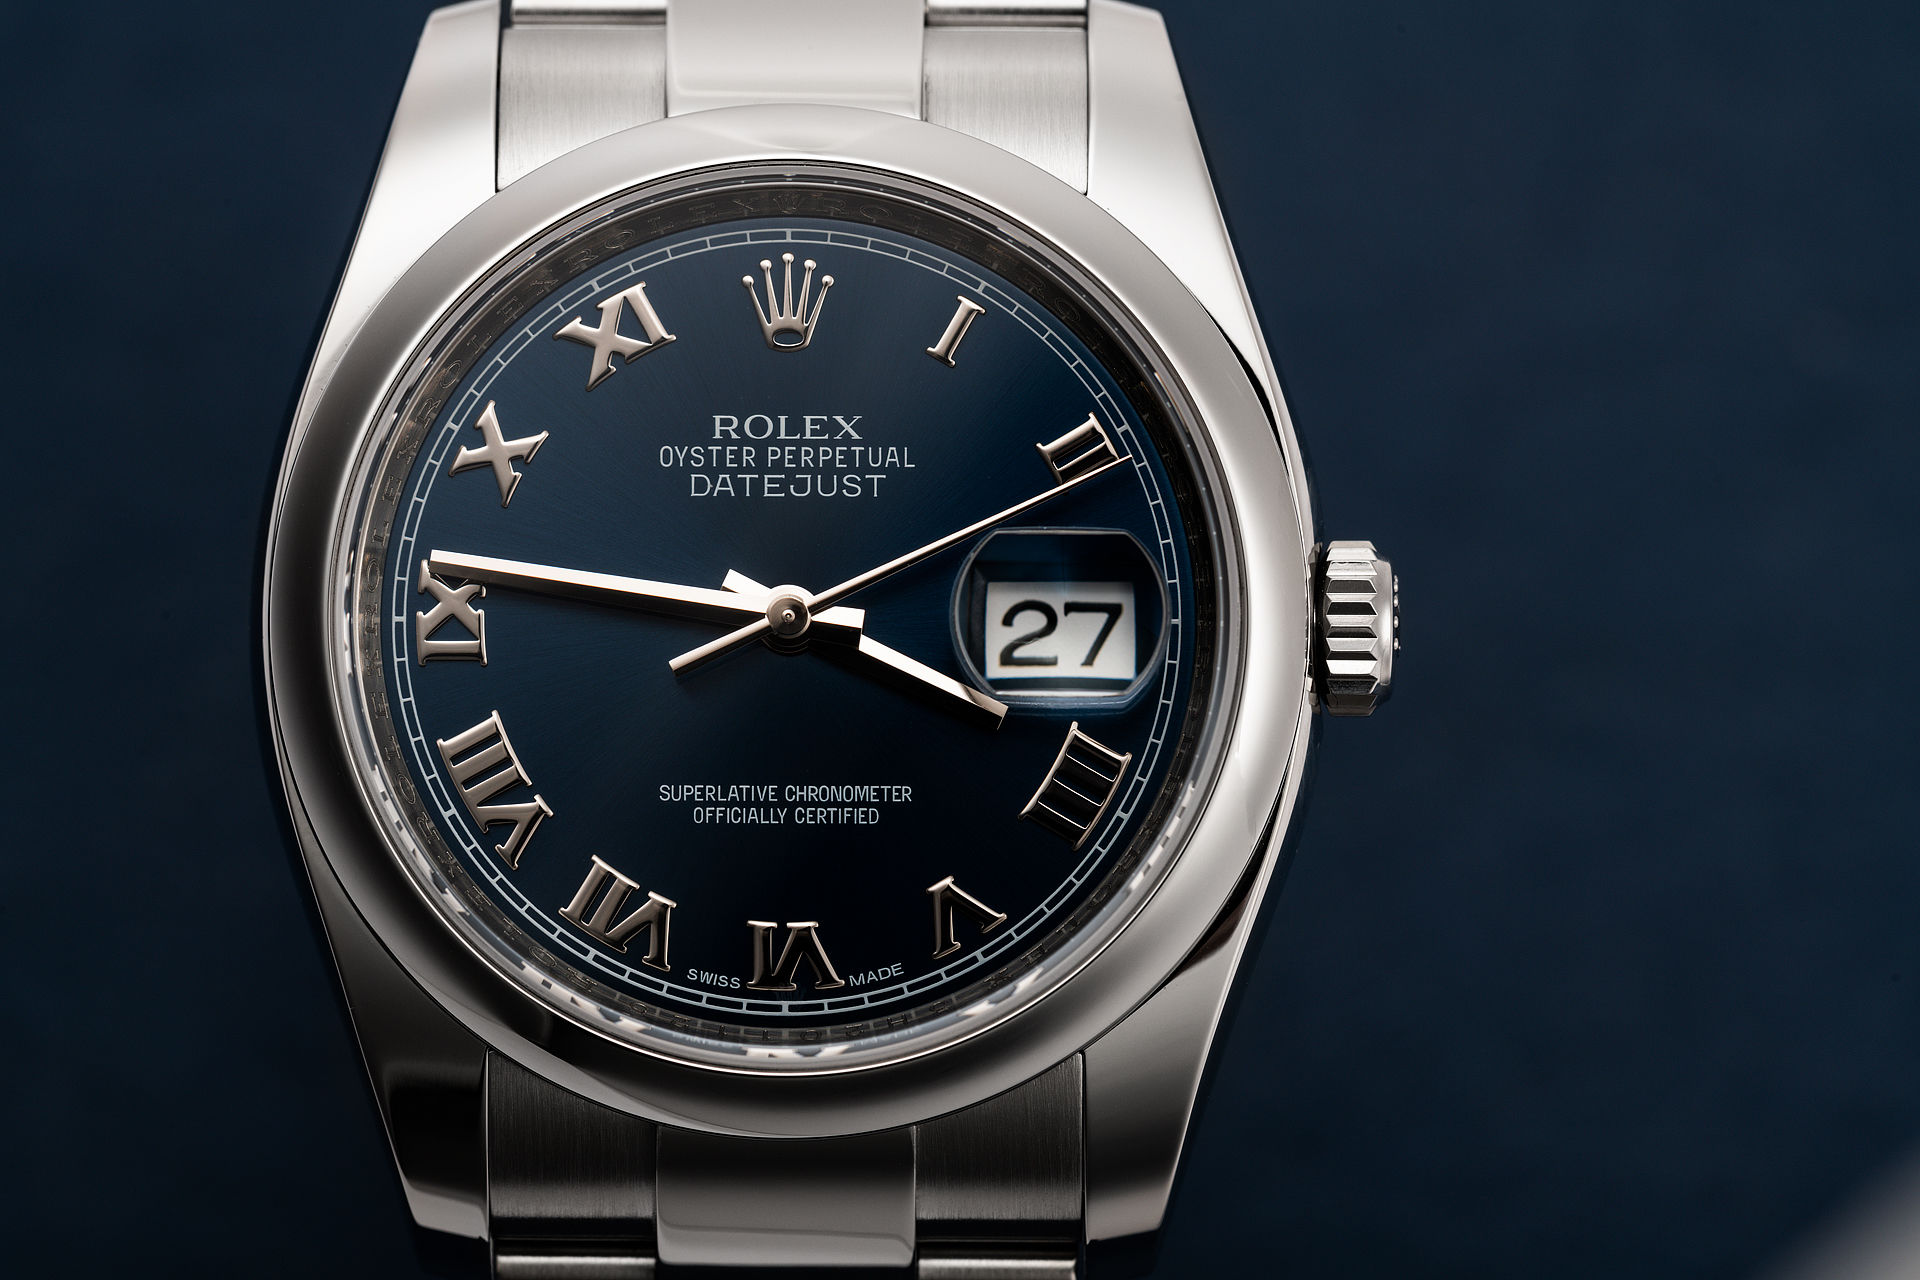 ref 116200 | 'Complete Set' Box & Papers  | Rolex Datejust